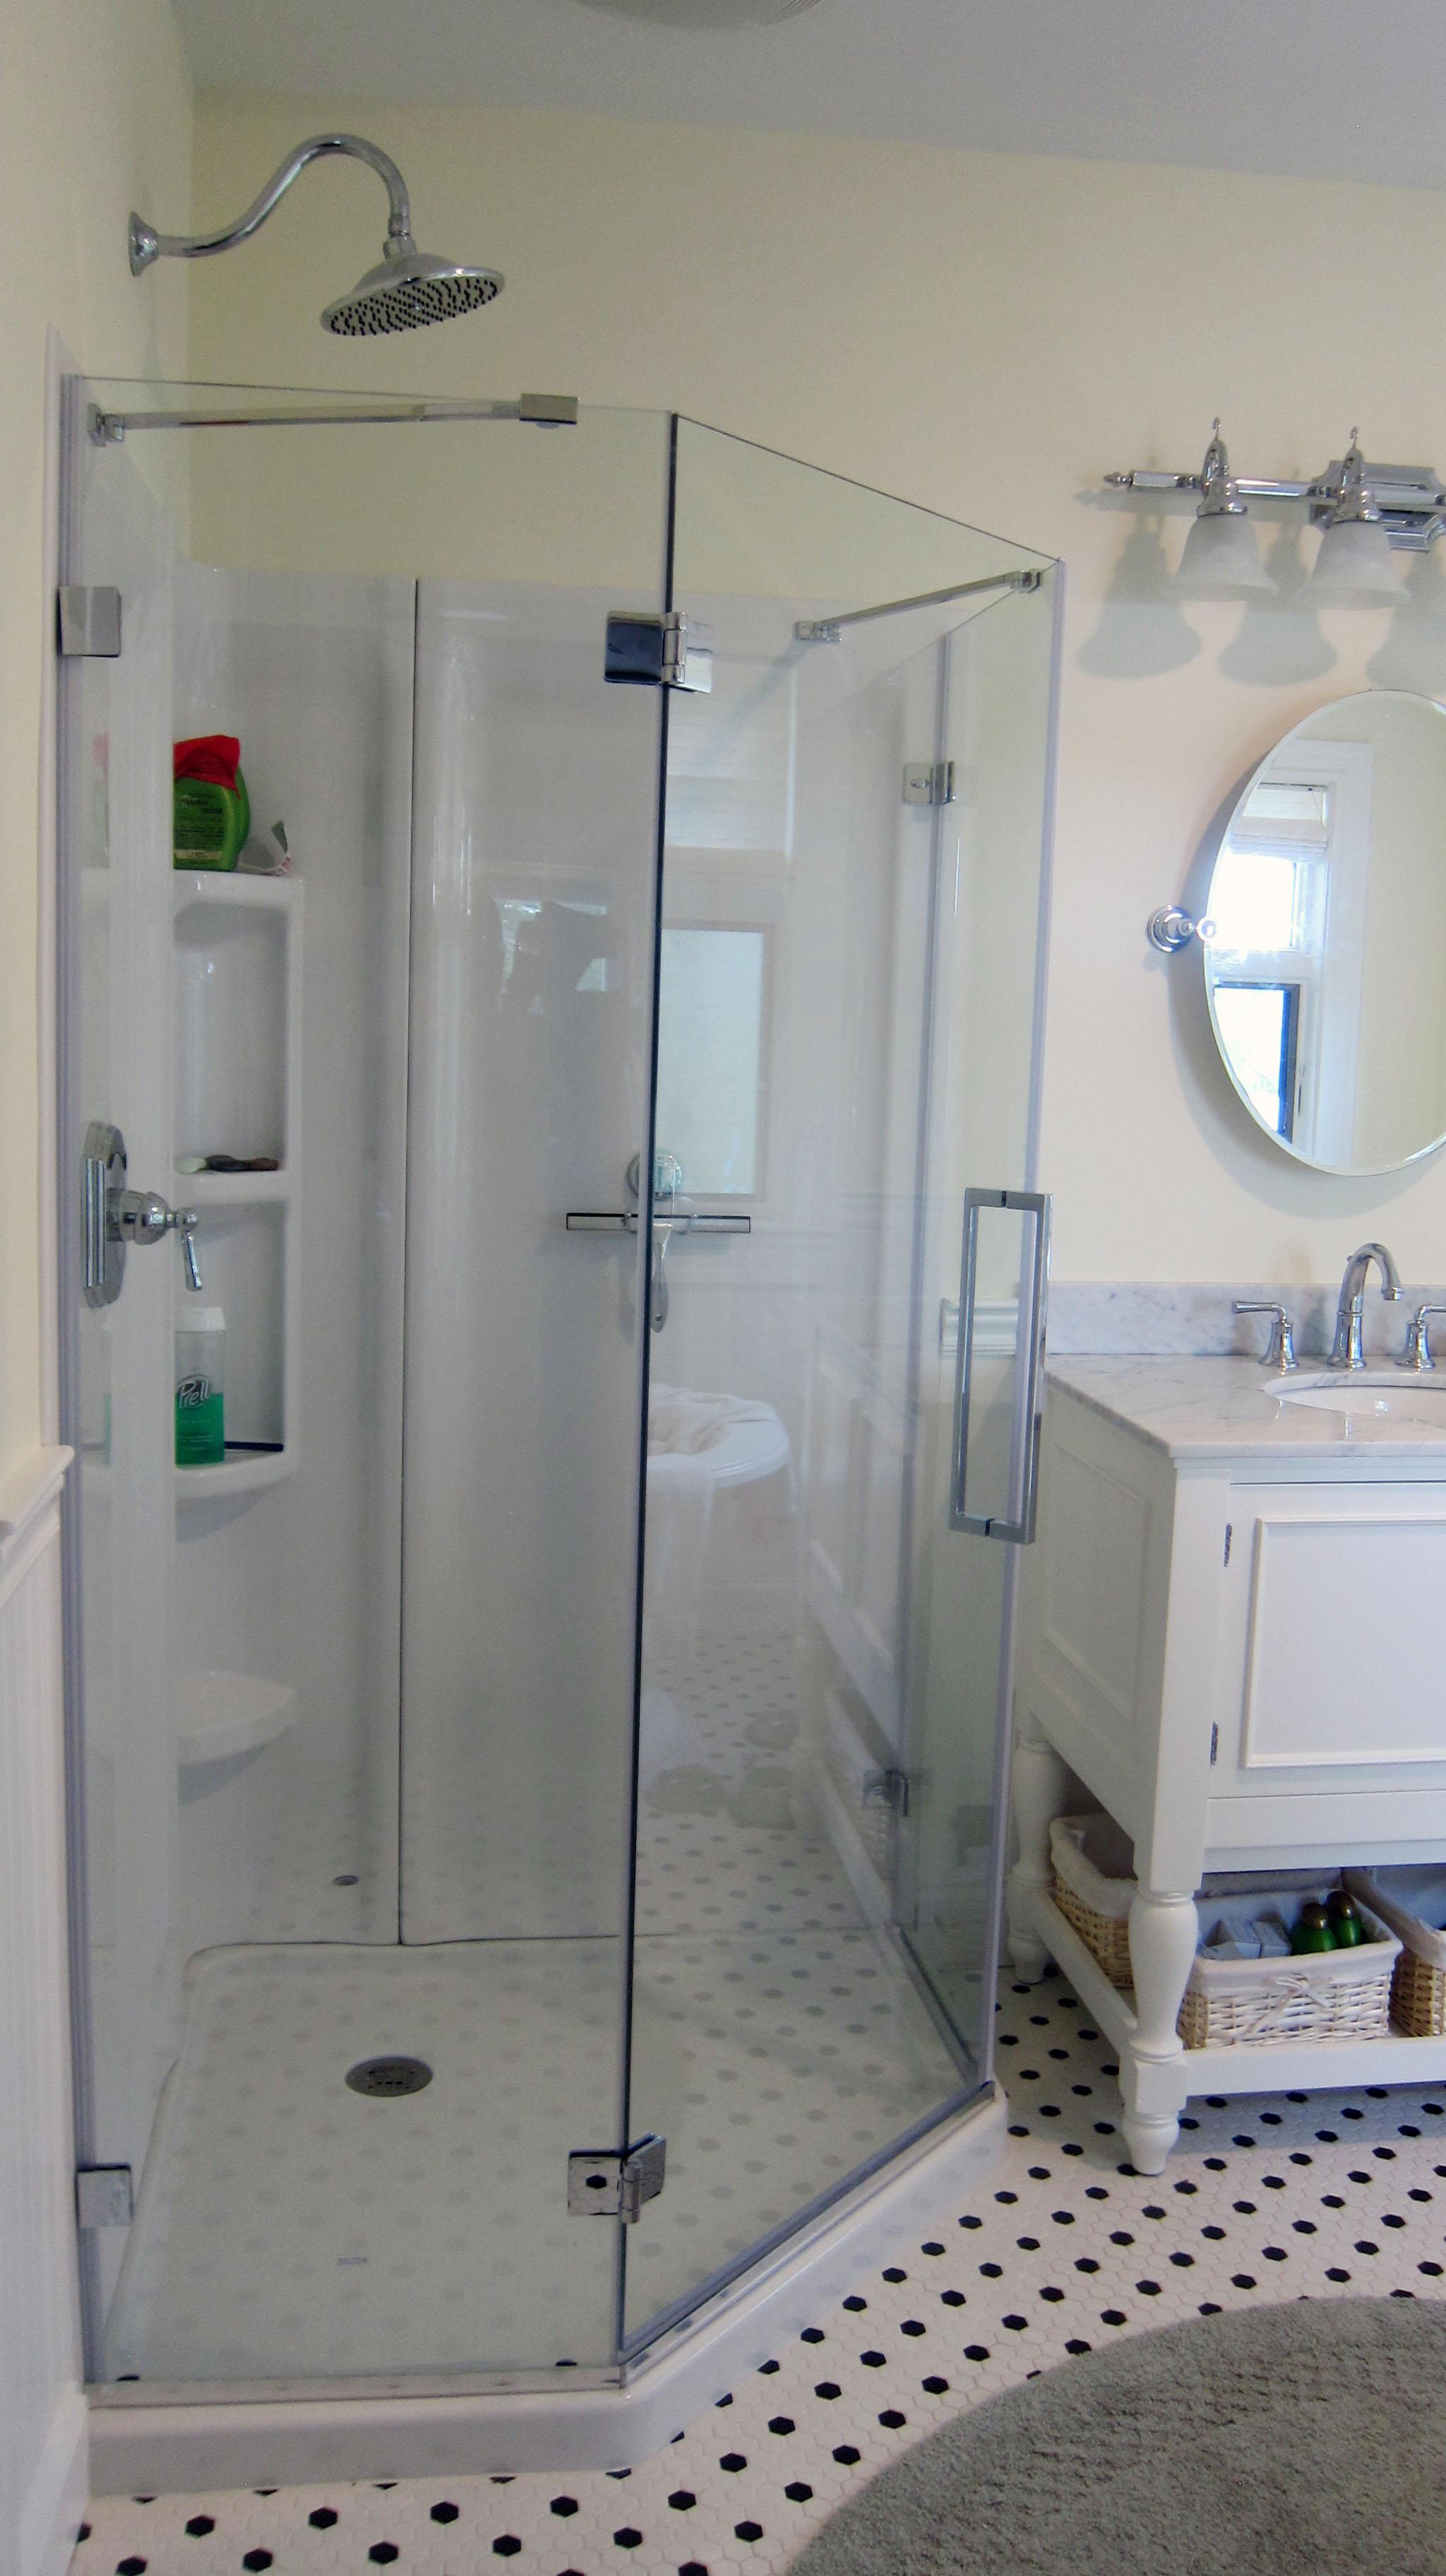 Installing Do It Yourself Acrylic Shower Walls Can Be Easy As Long As You